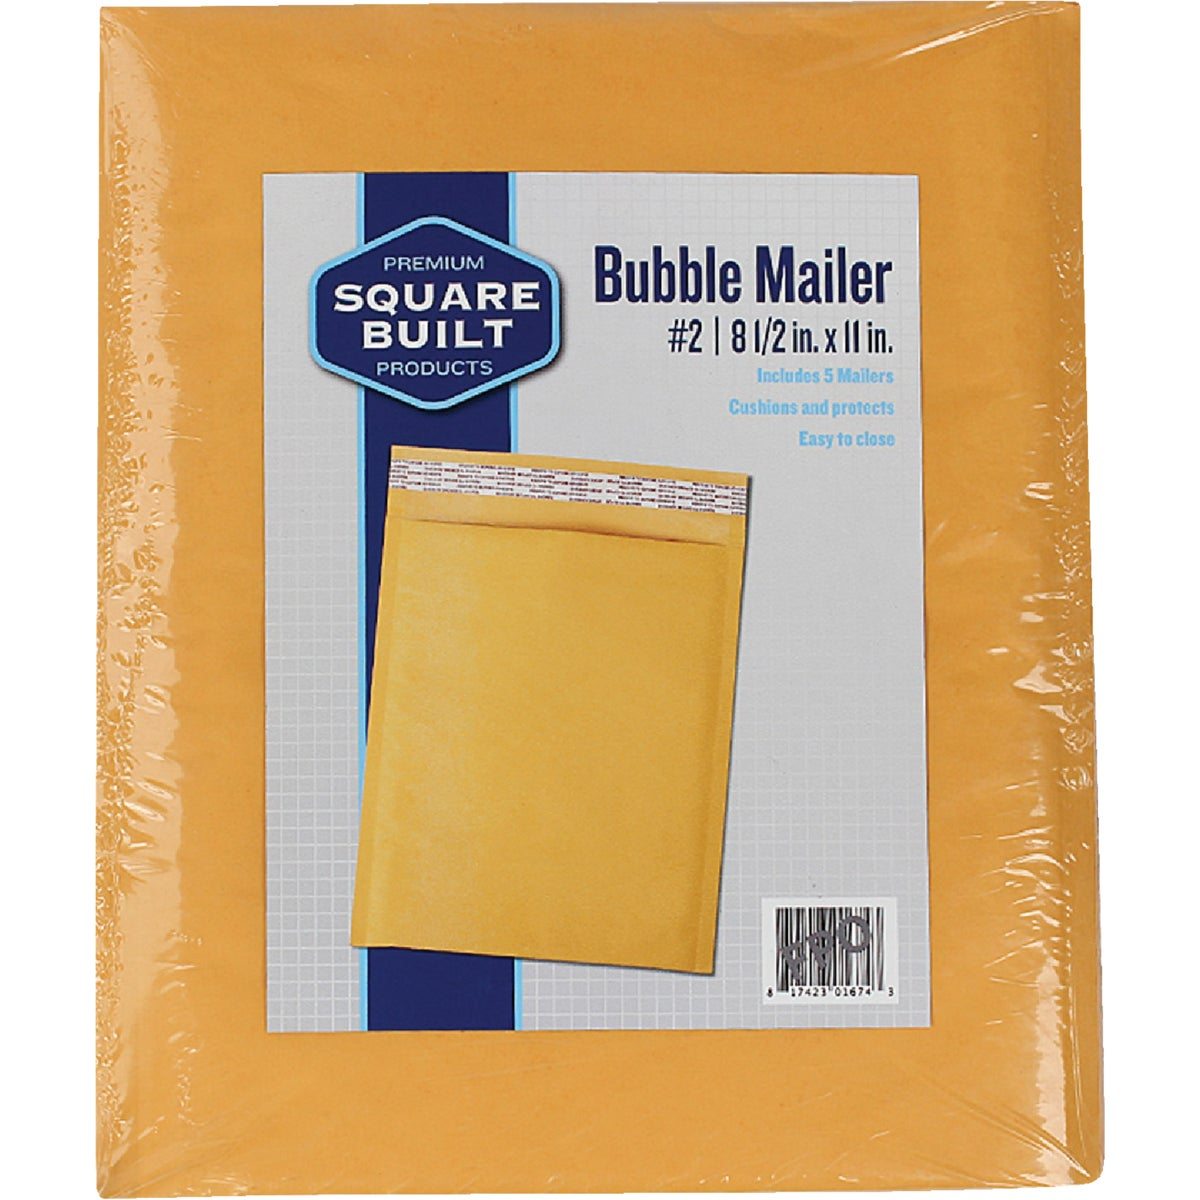 #2 BUBBLE MAILER - RBM812-4 by Broadway Industries